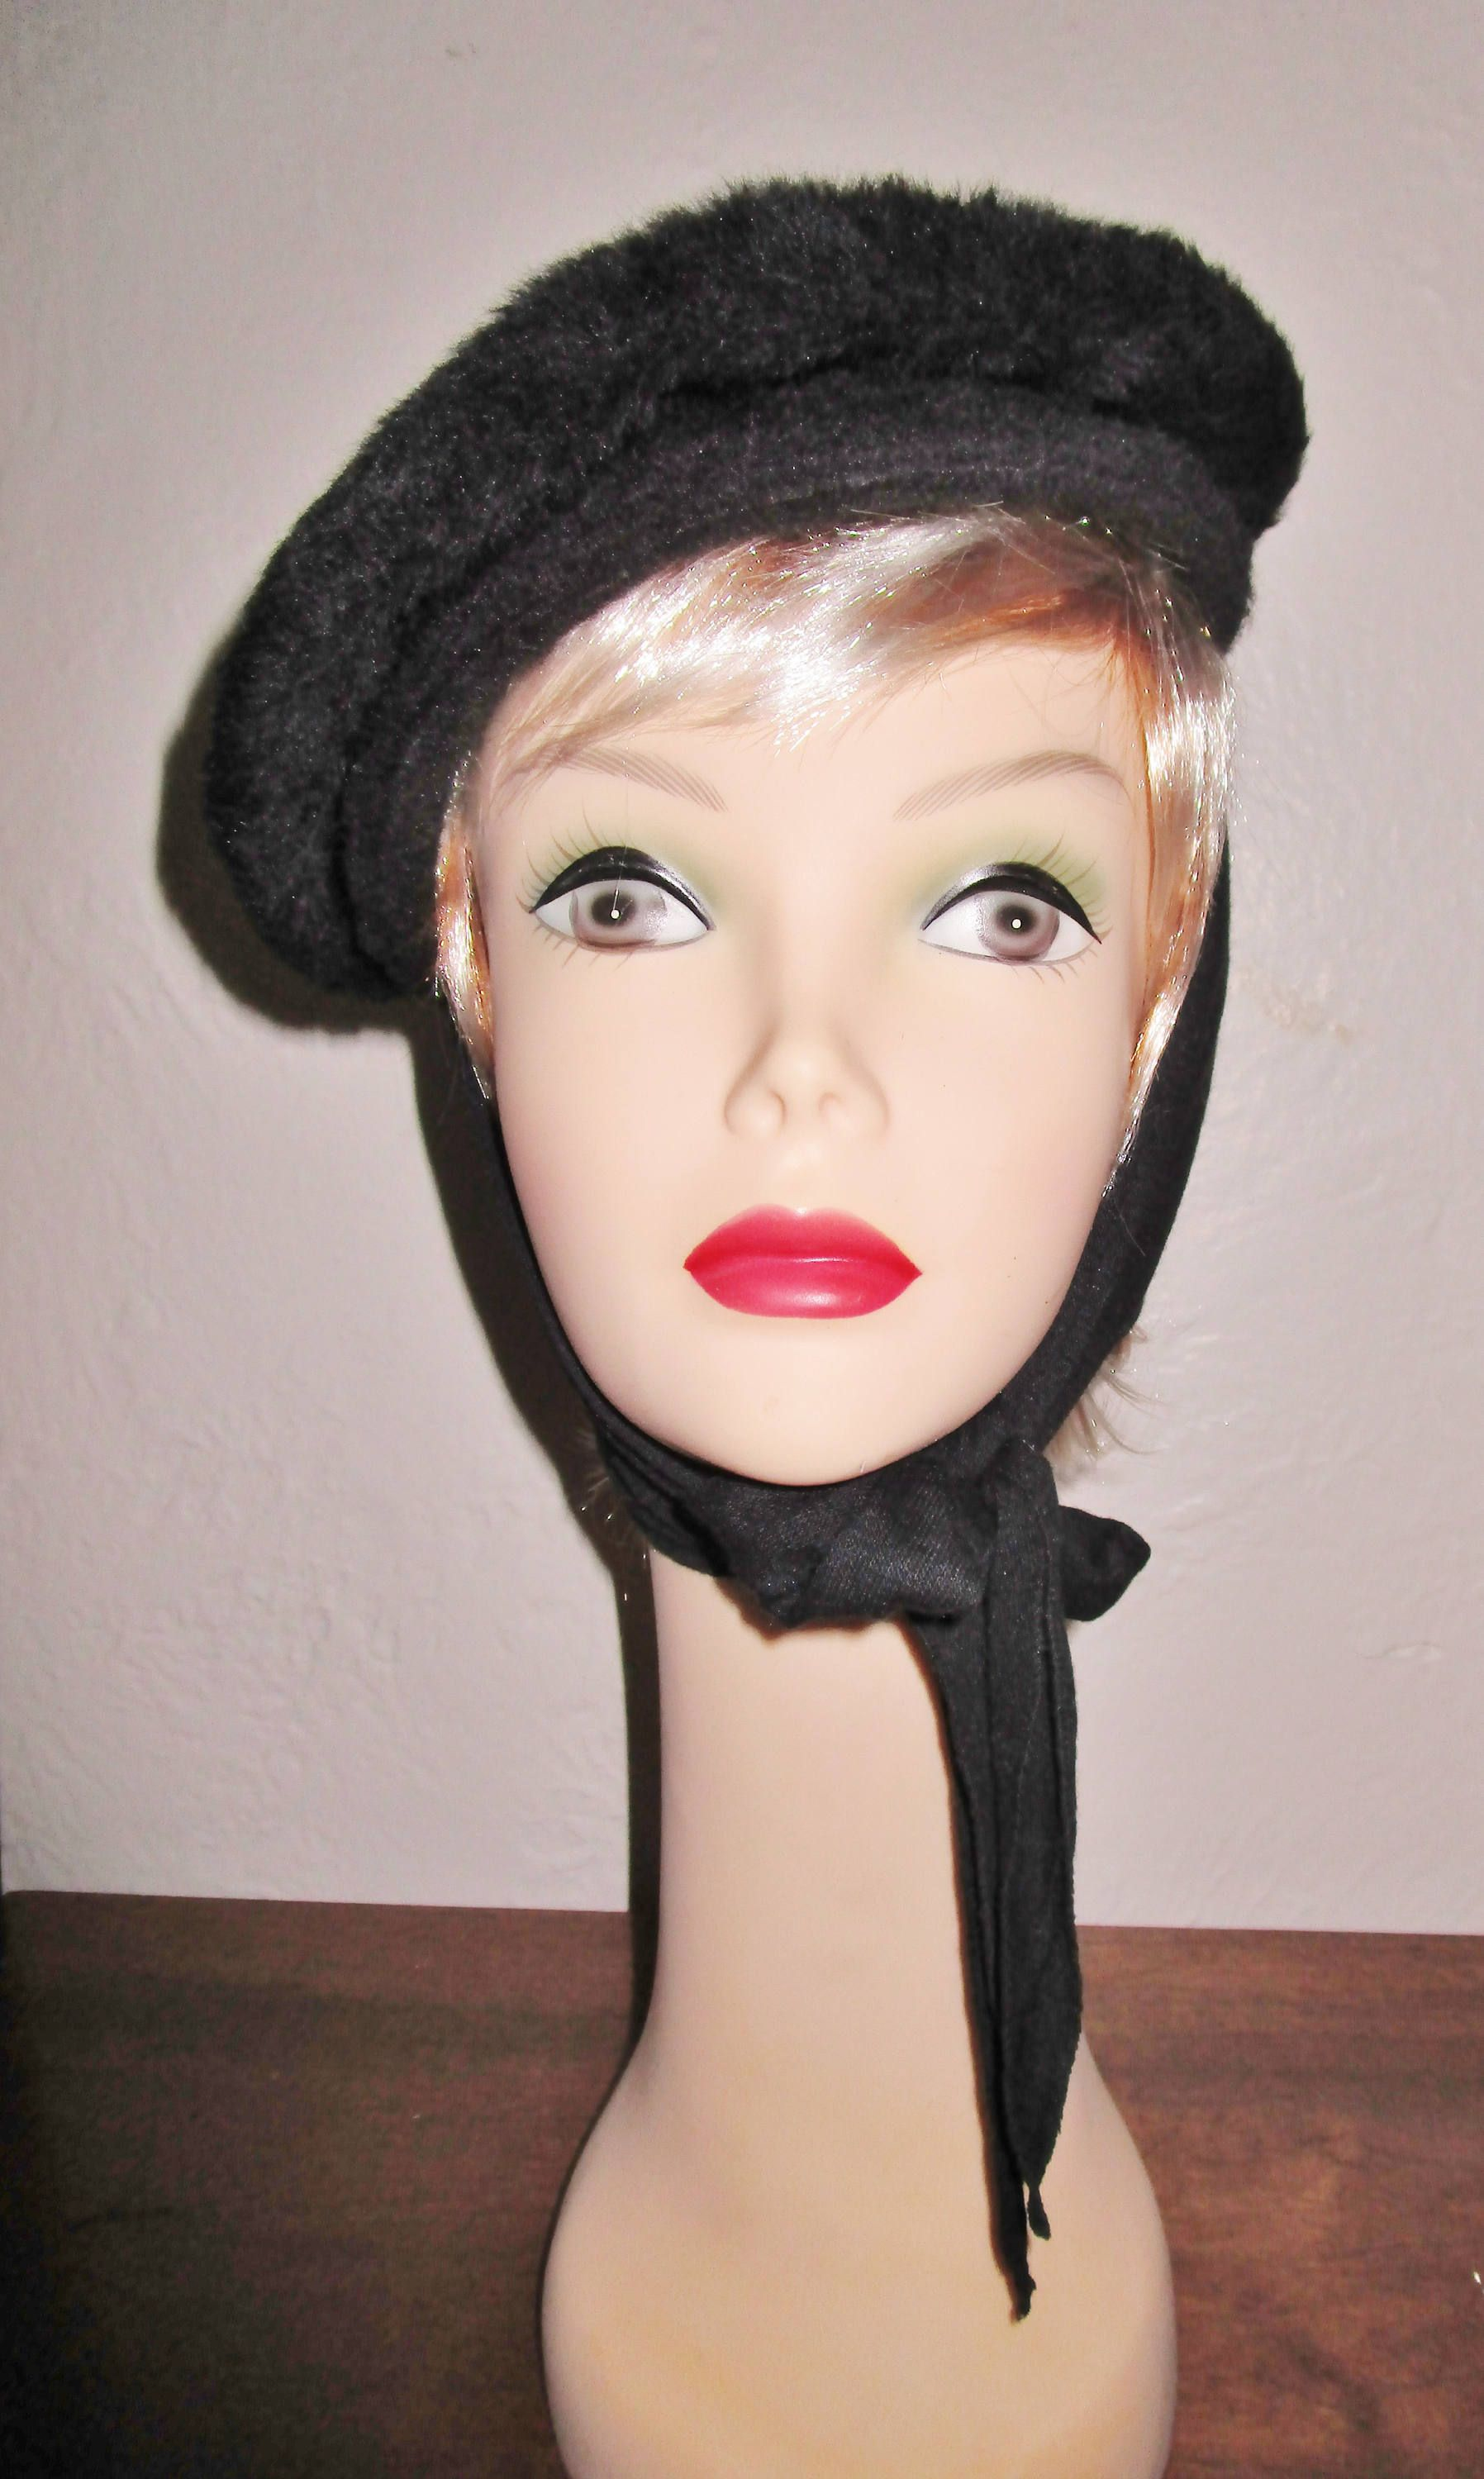 db943ef4a0856 Couture Vintage High Newsboy Or Beret Brimmed Black Faux Fur Hat Knit Scarf  Attached Winter Wear 1950 s Audrey Hepburn Style Art Deco Retro by  BagsnBling on ...